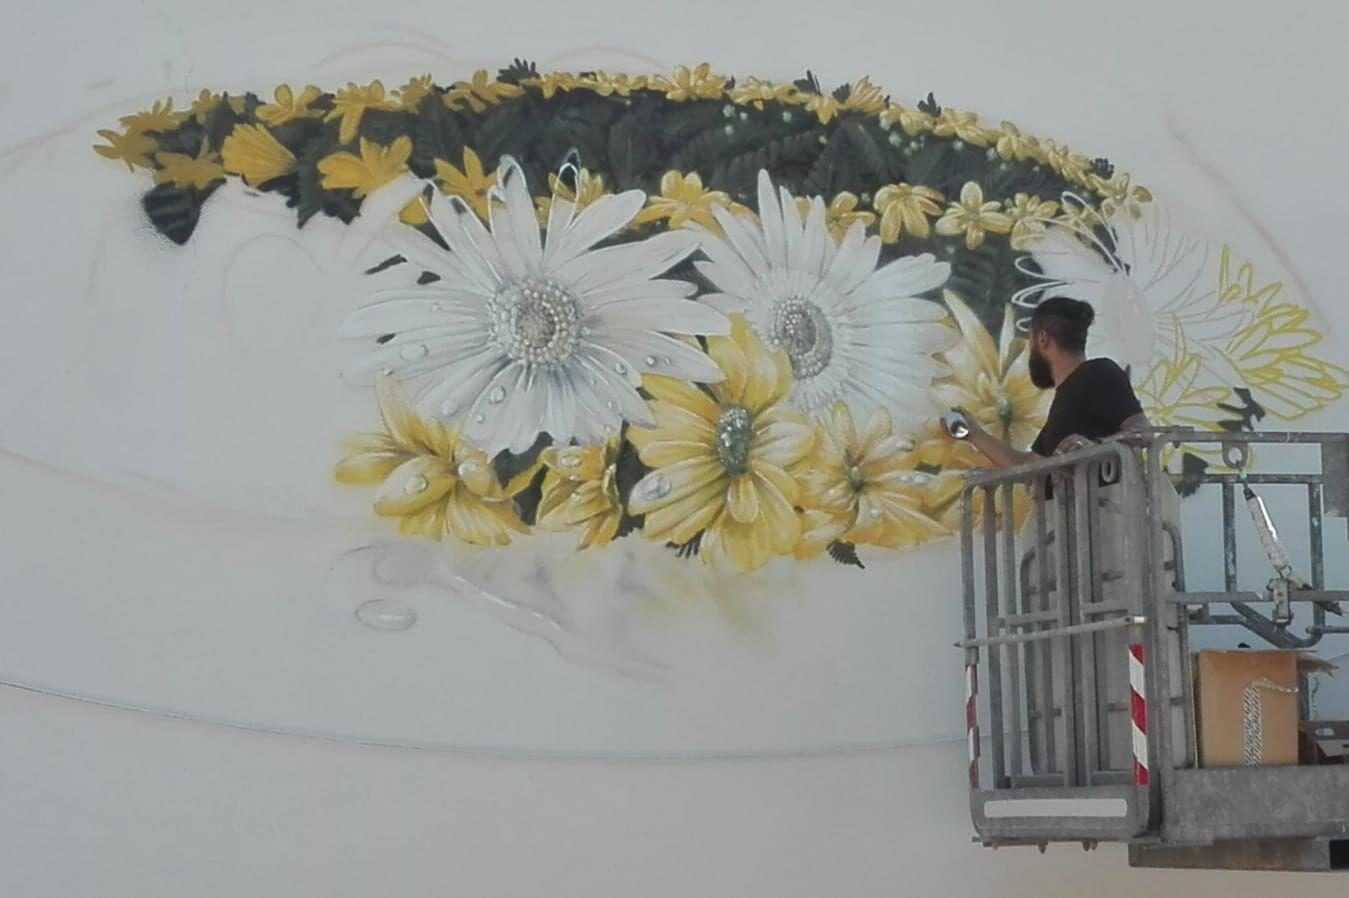 The artist Neve works on the murals in Piave Square